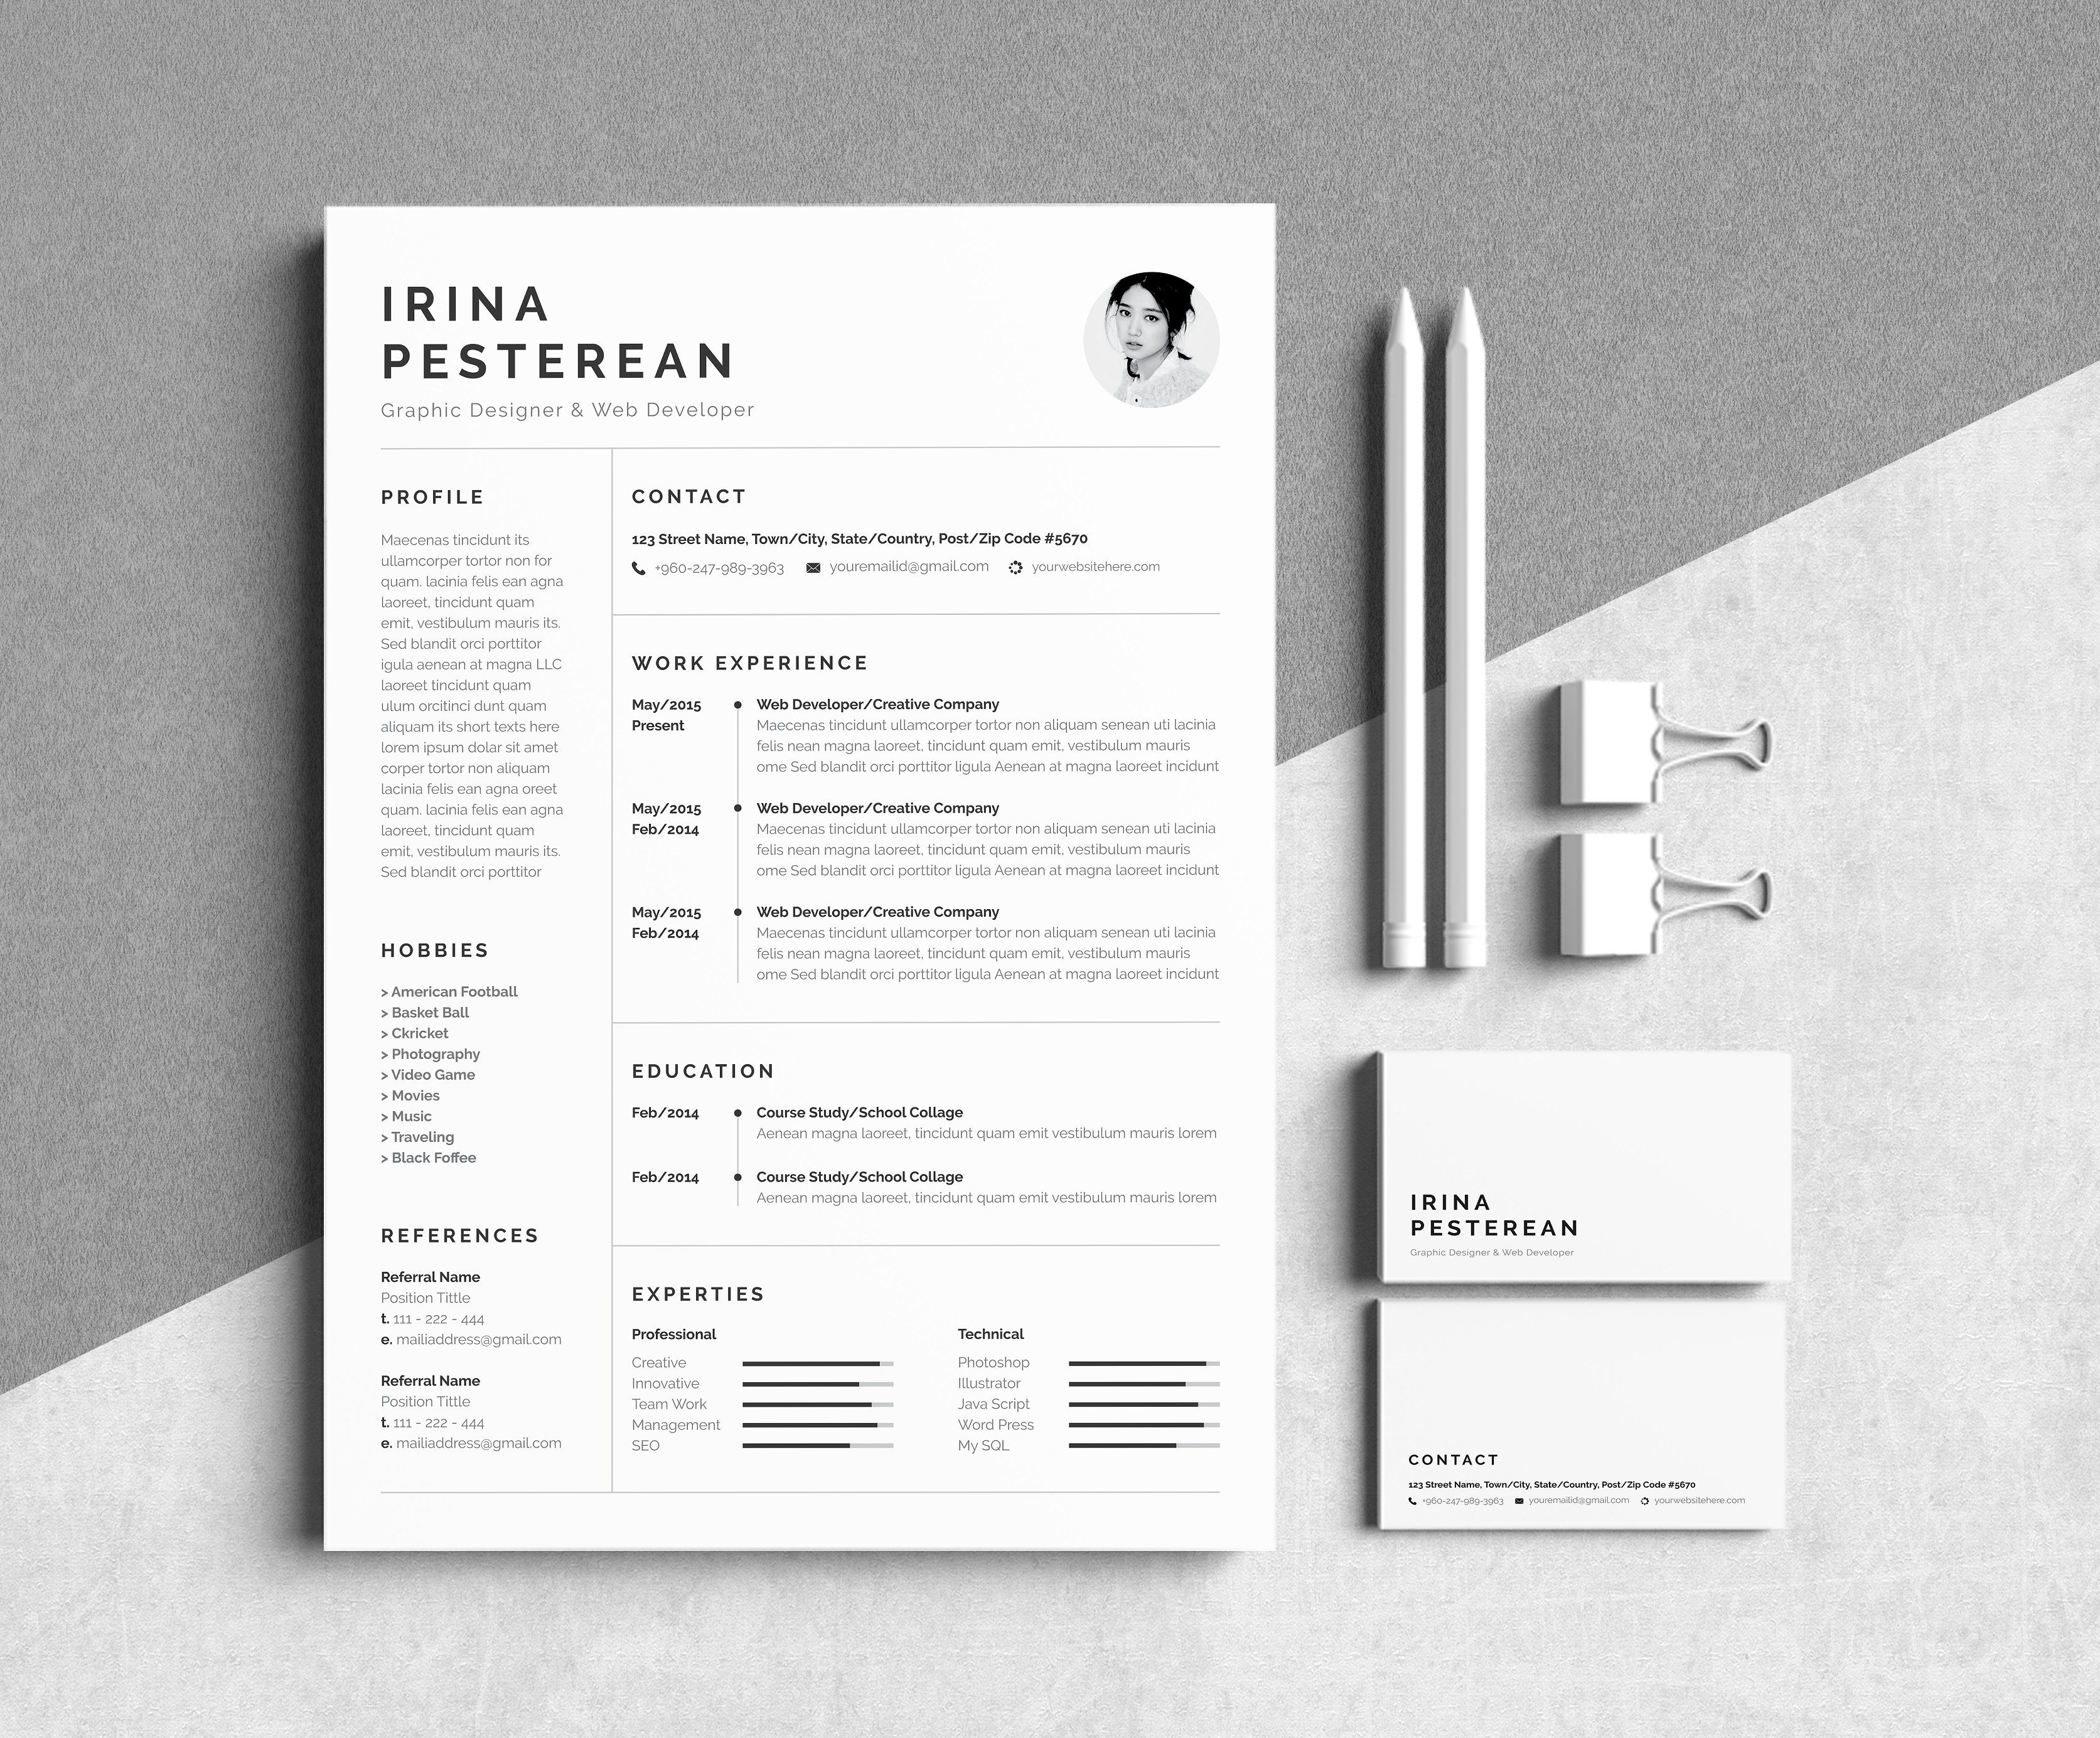 Resume Cv Irina Pesterean With Images Resume Design Template